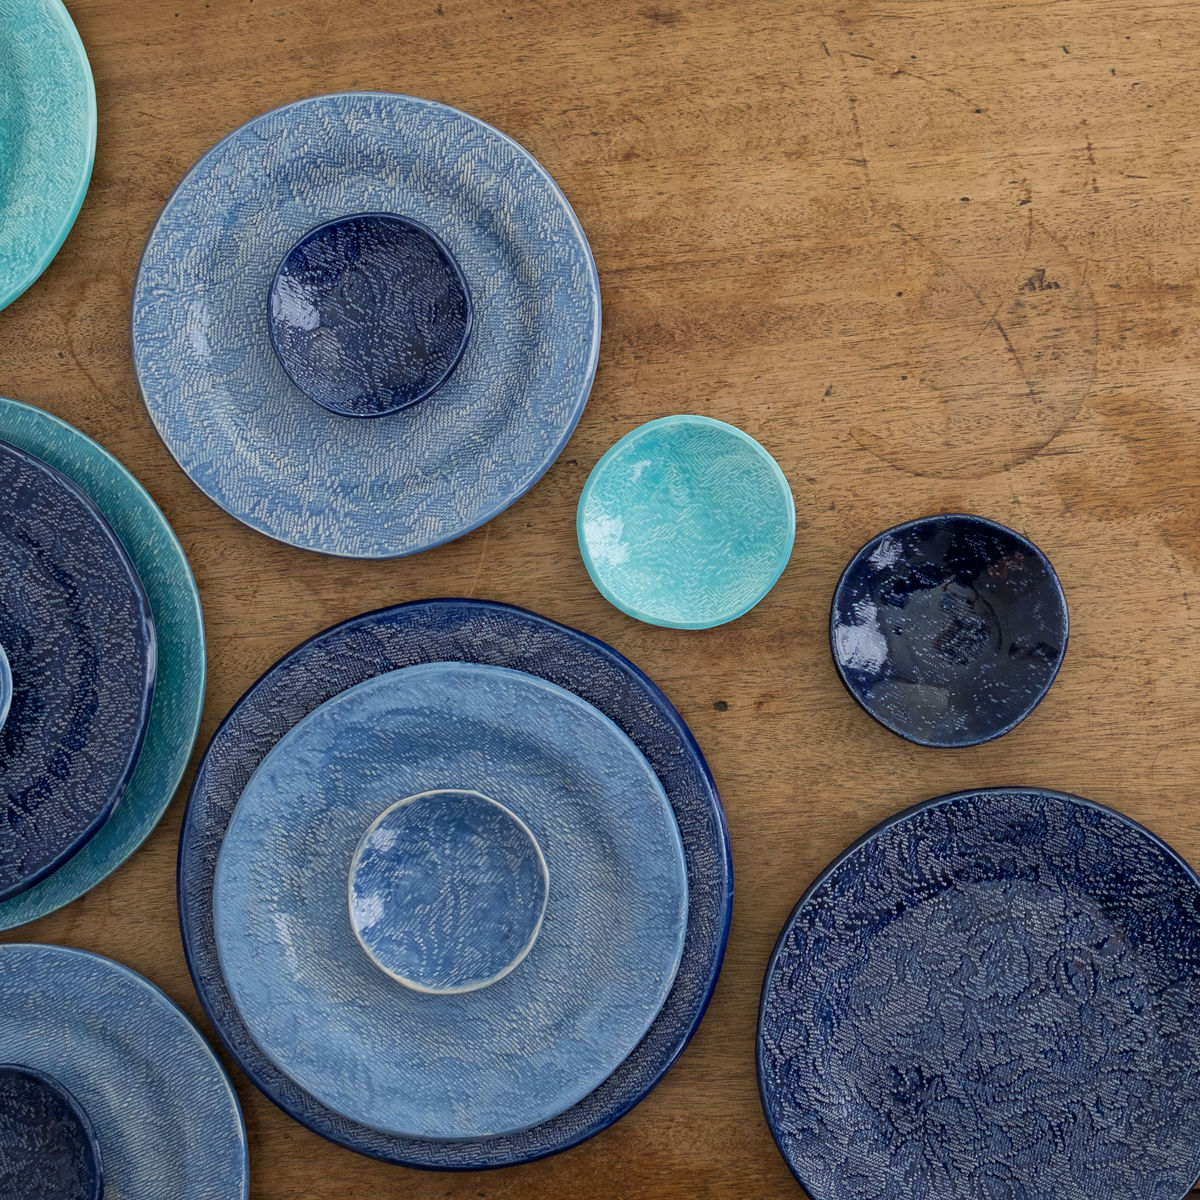 Turabi ceramics - Lake blue lace imprinted small plate - Handcrafted in Palestine - product images  of